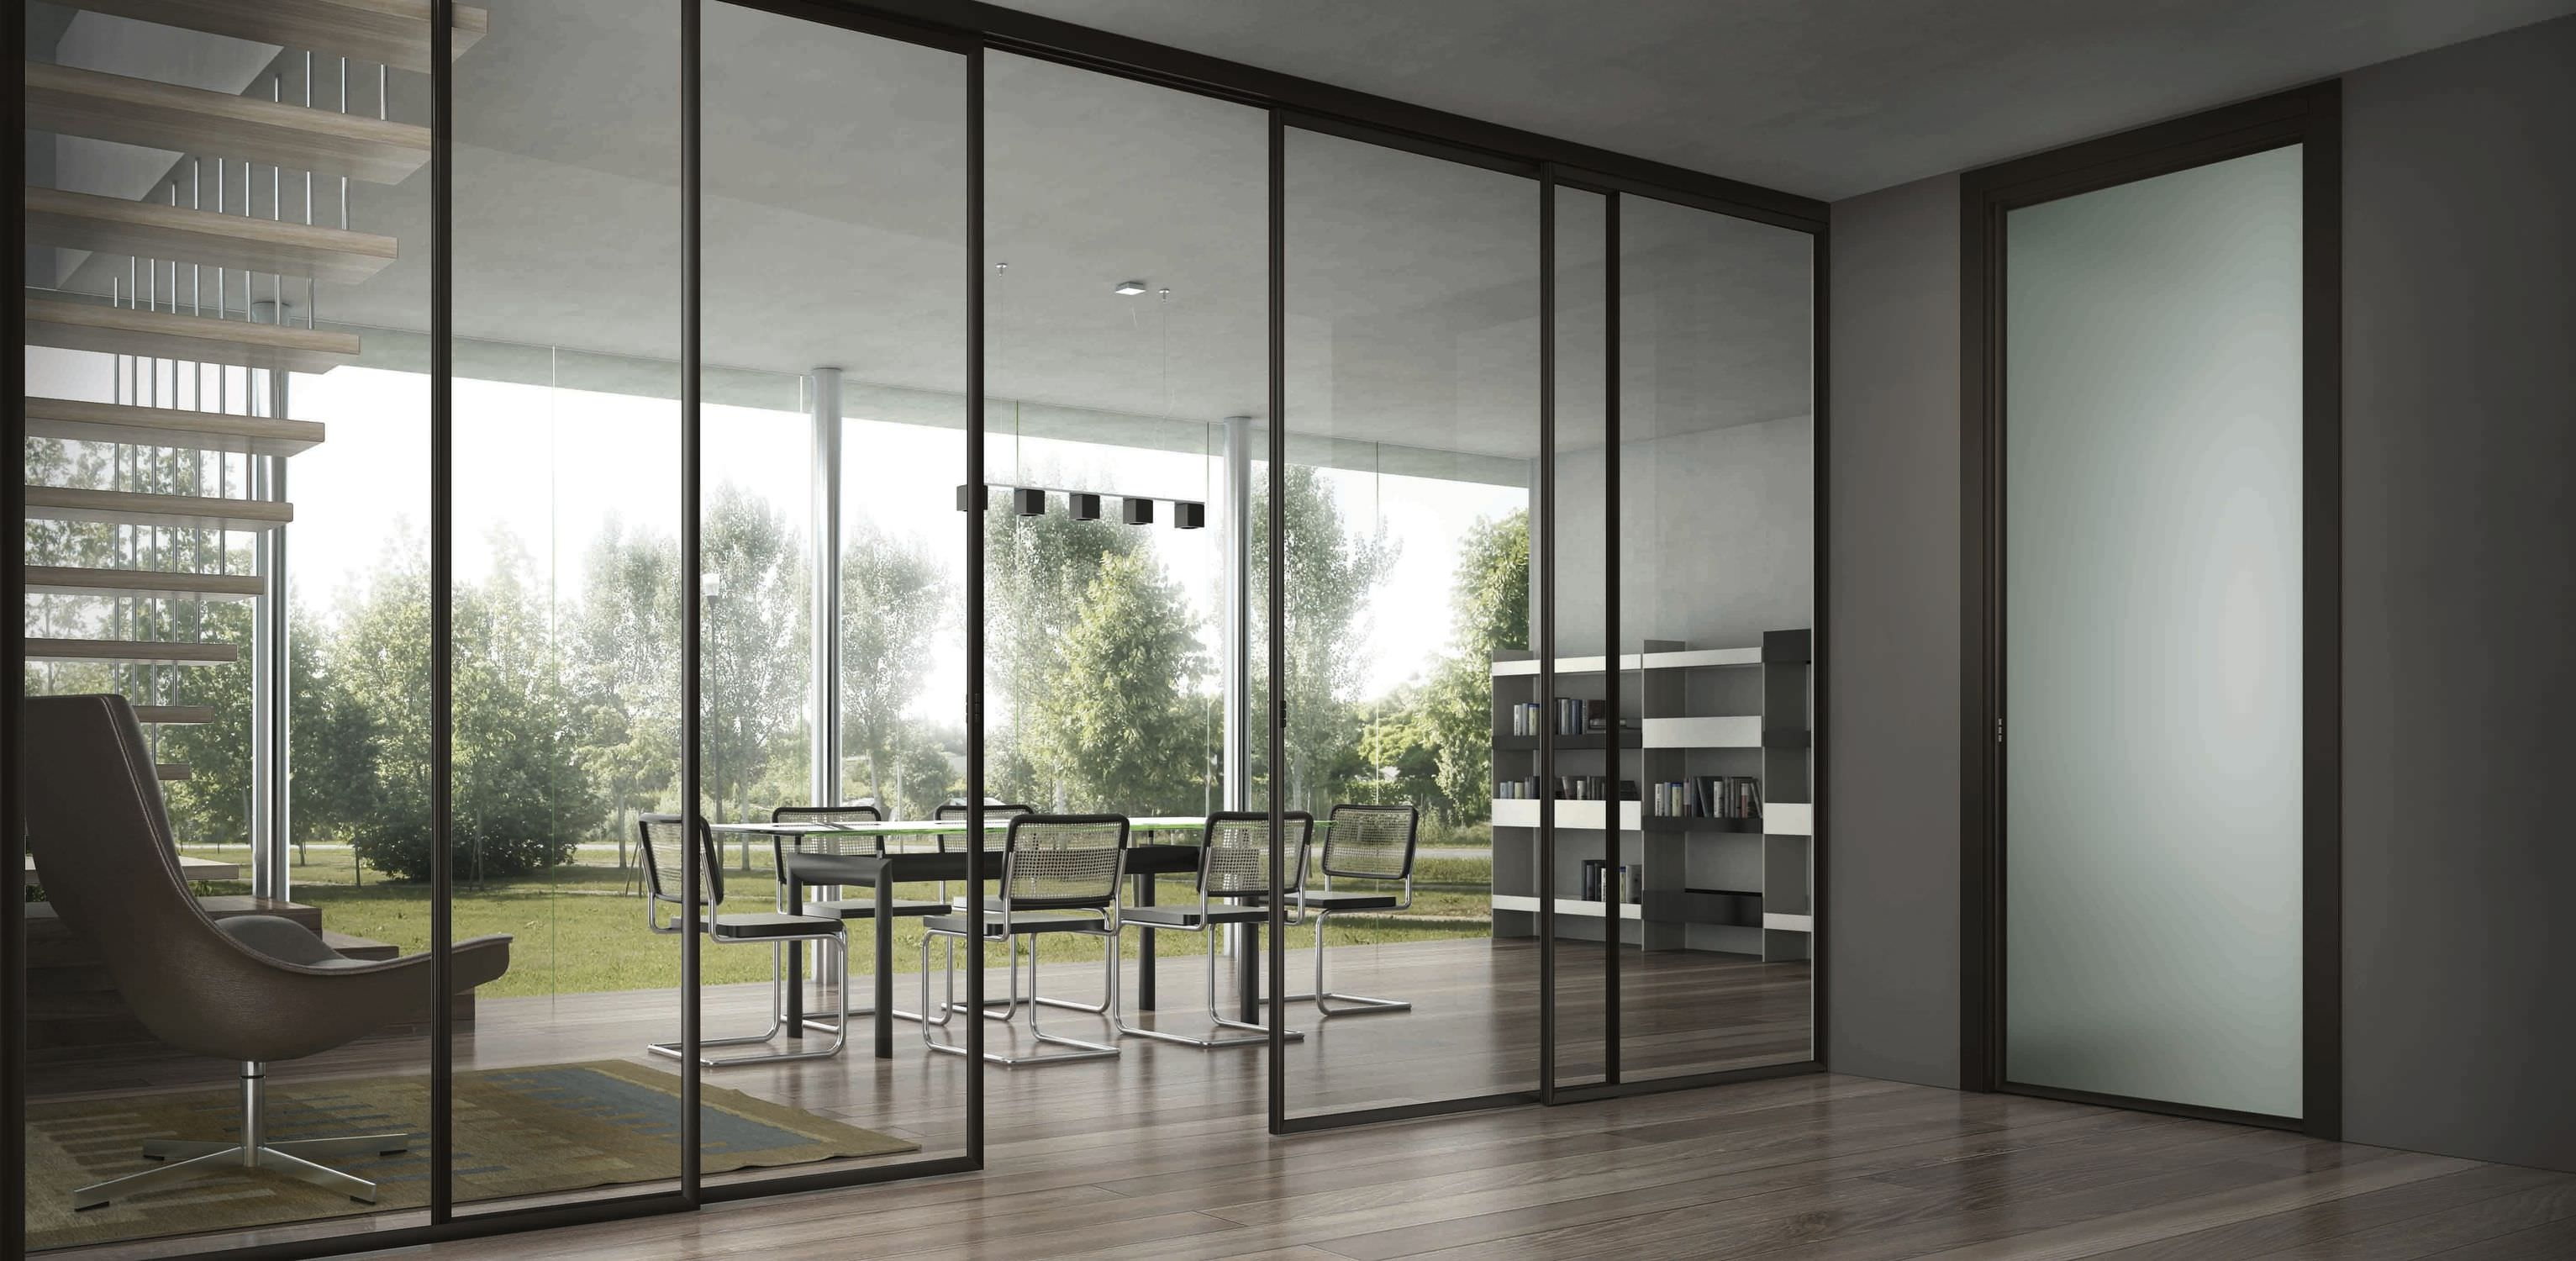 Fire Resistant Sliding Glass DoorsFire Resistant Sliding Glass Doors